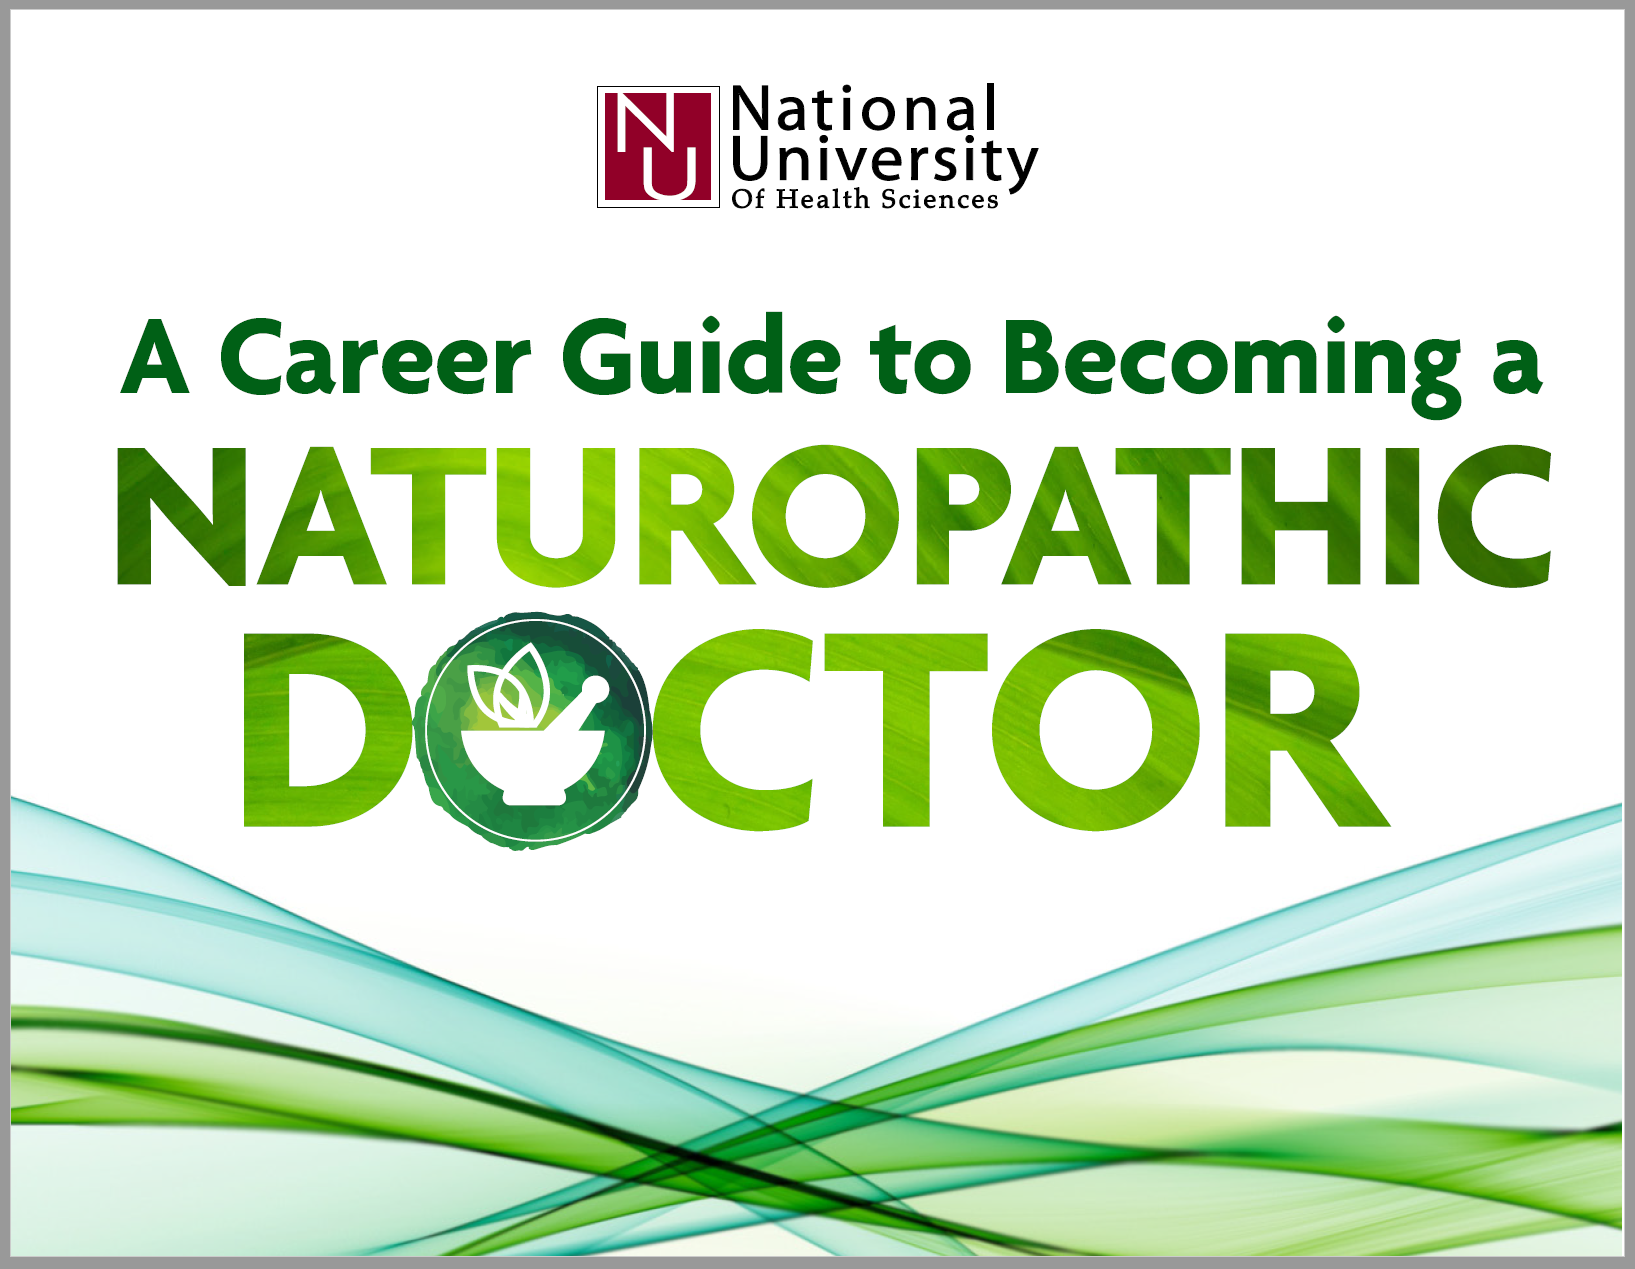 a career guide to naturopathic doctor cover.png